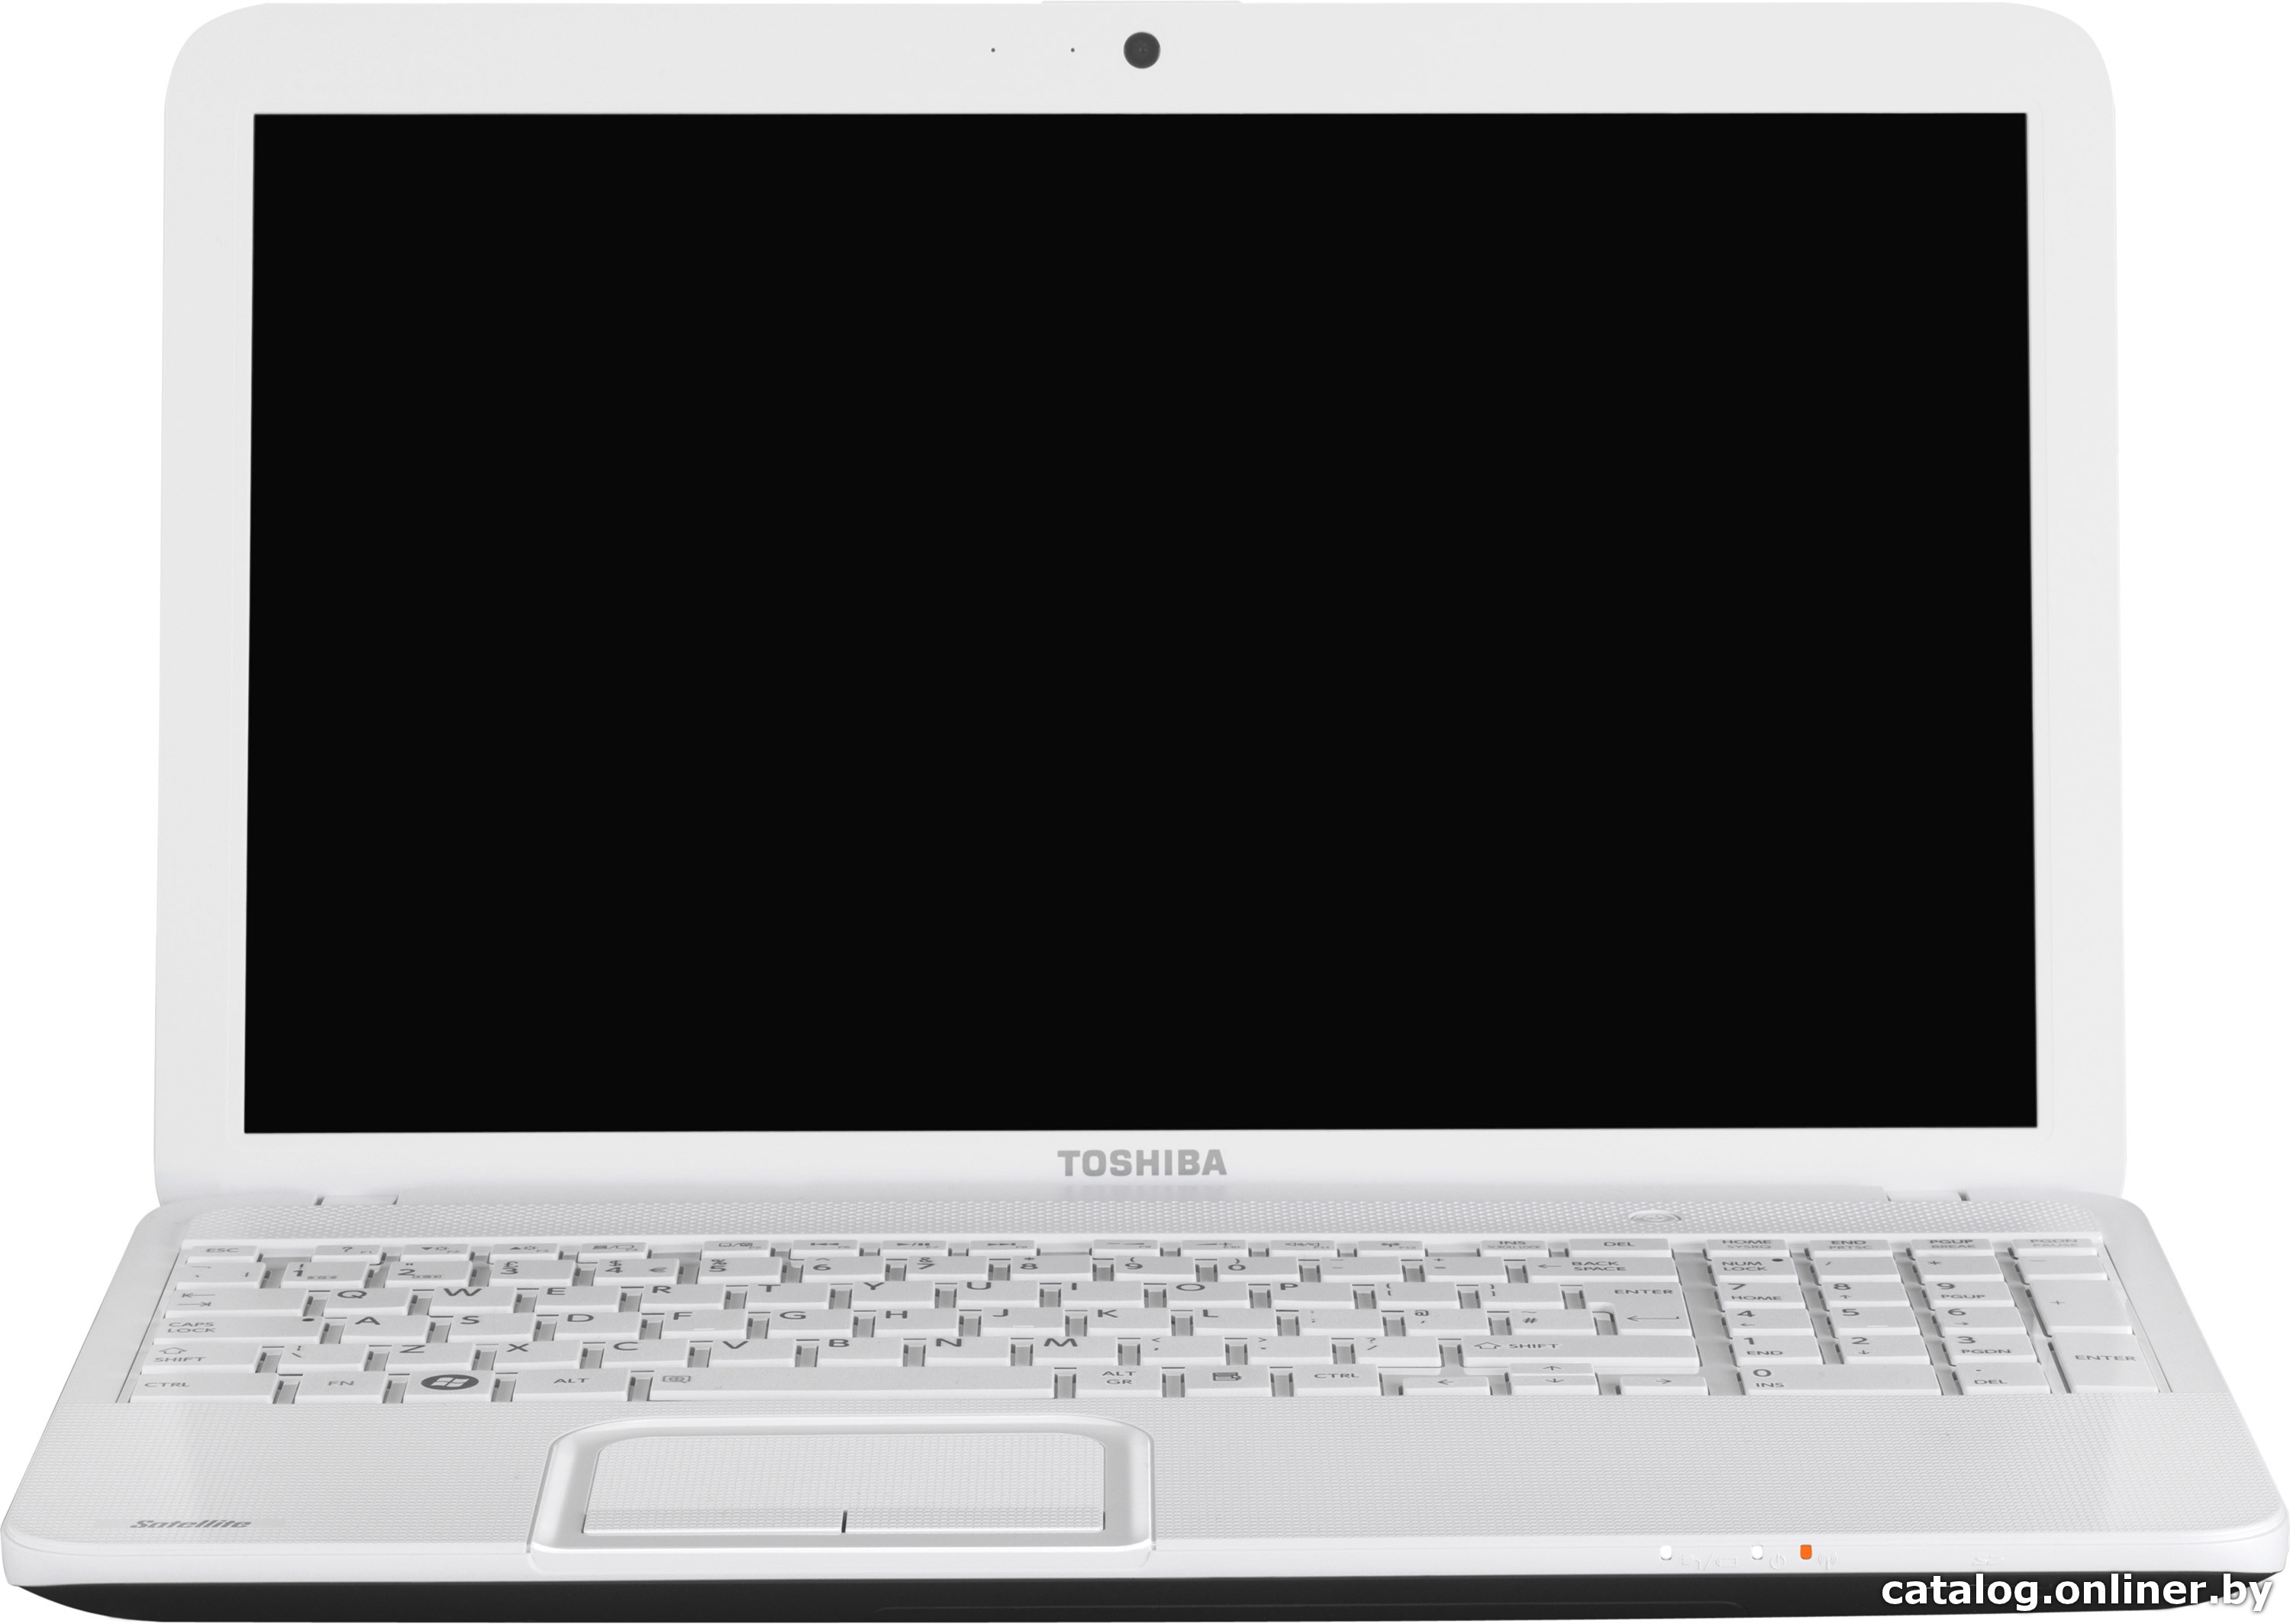 TOSHIBA SATELLITE C855-1UR DRIVERS PC